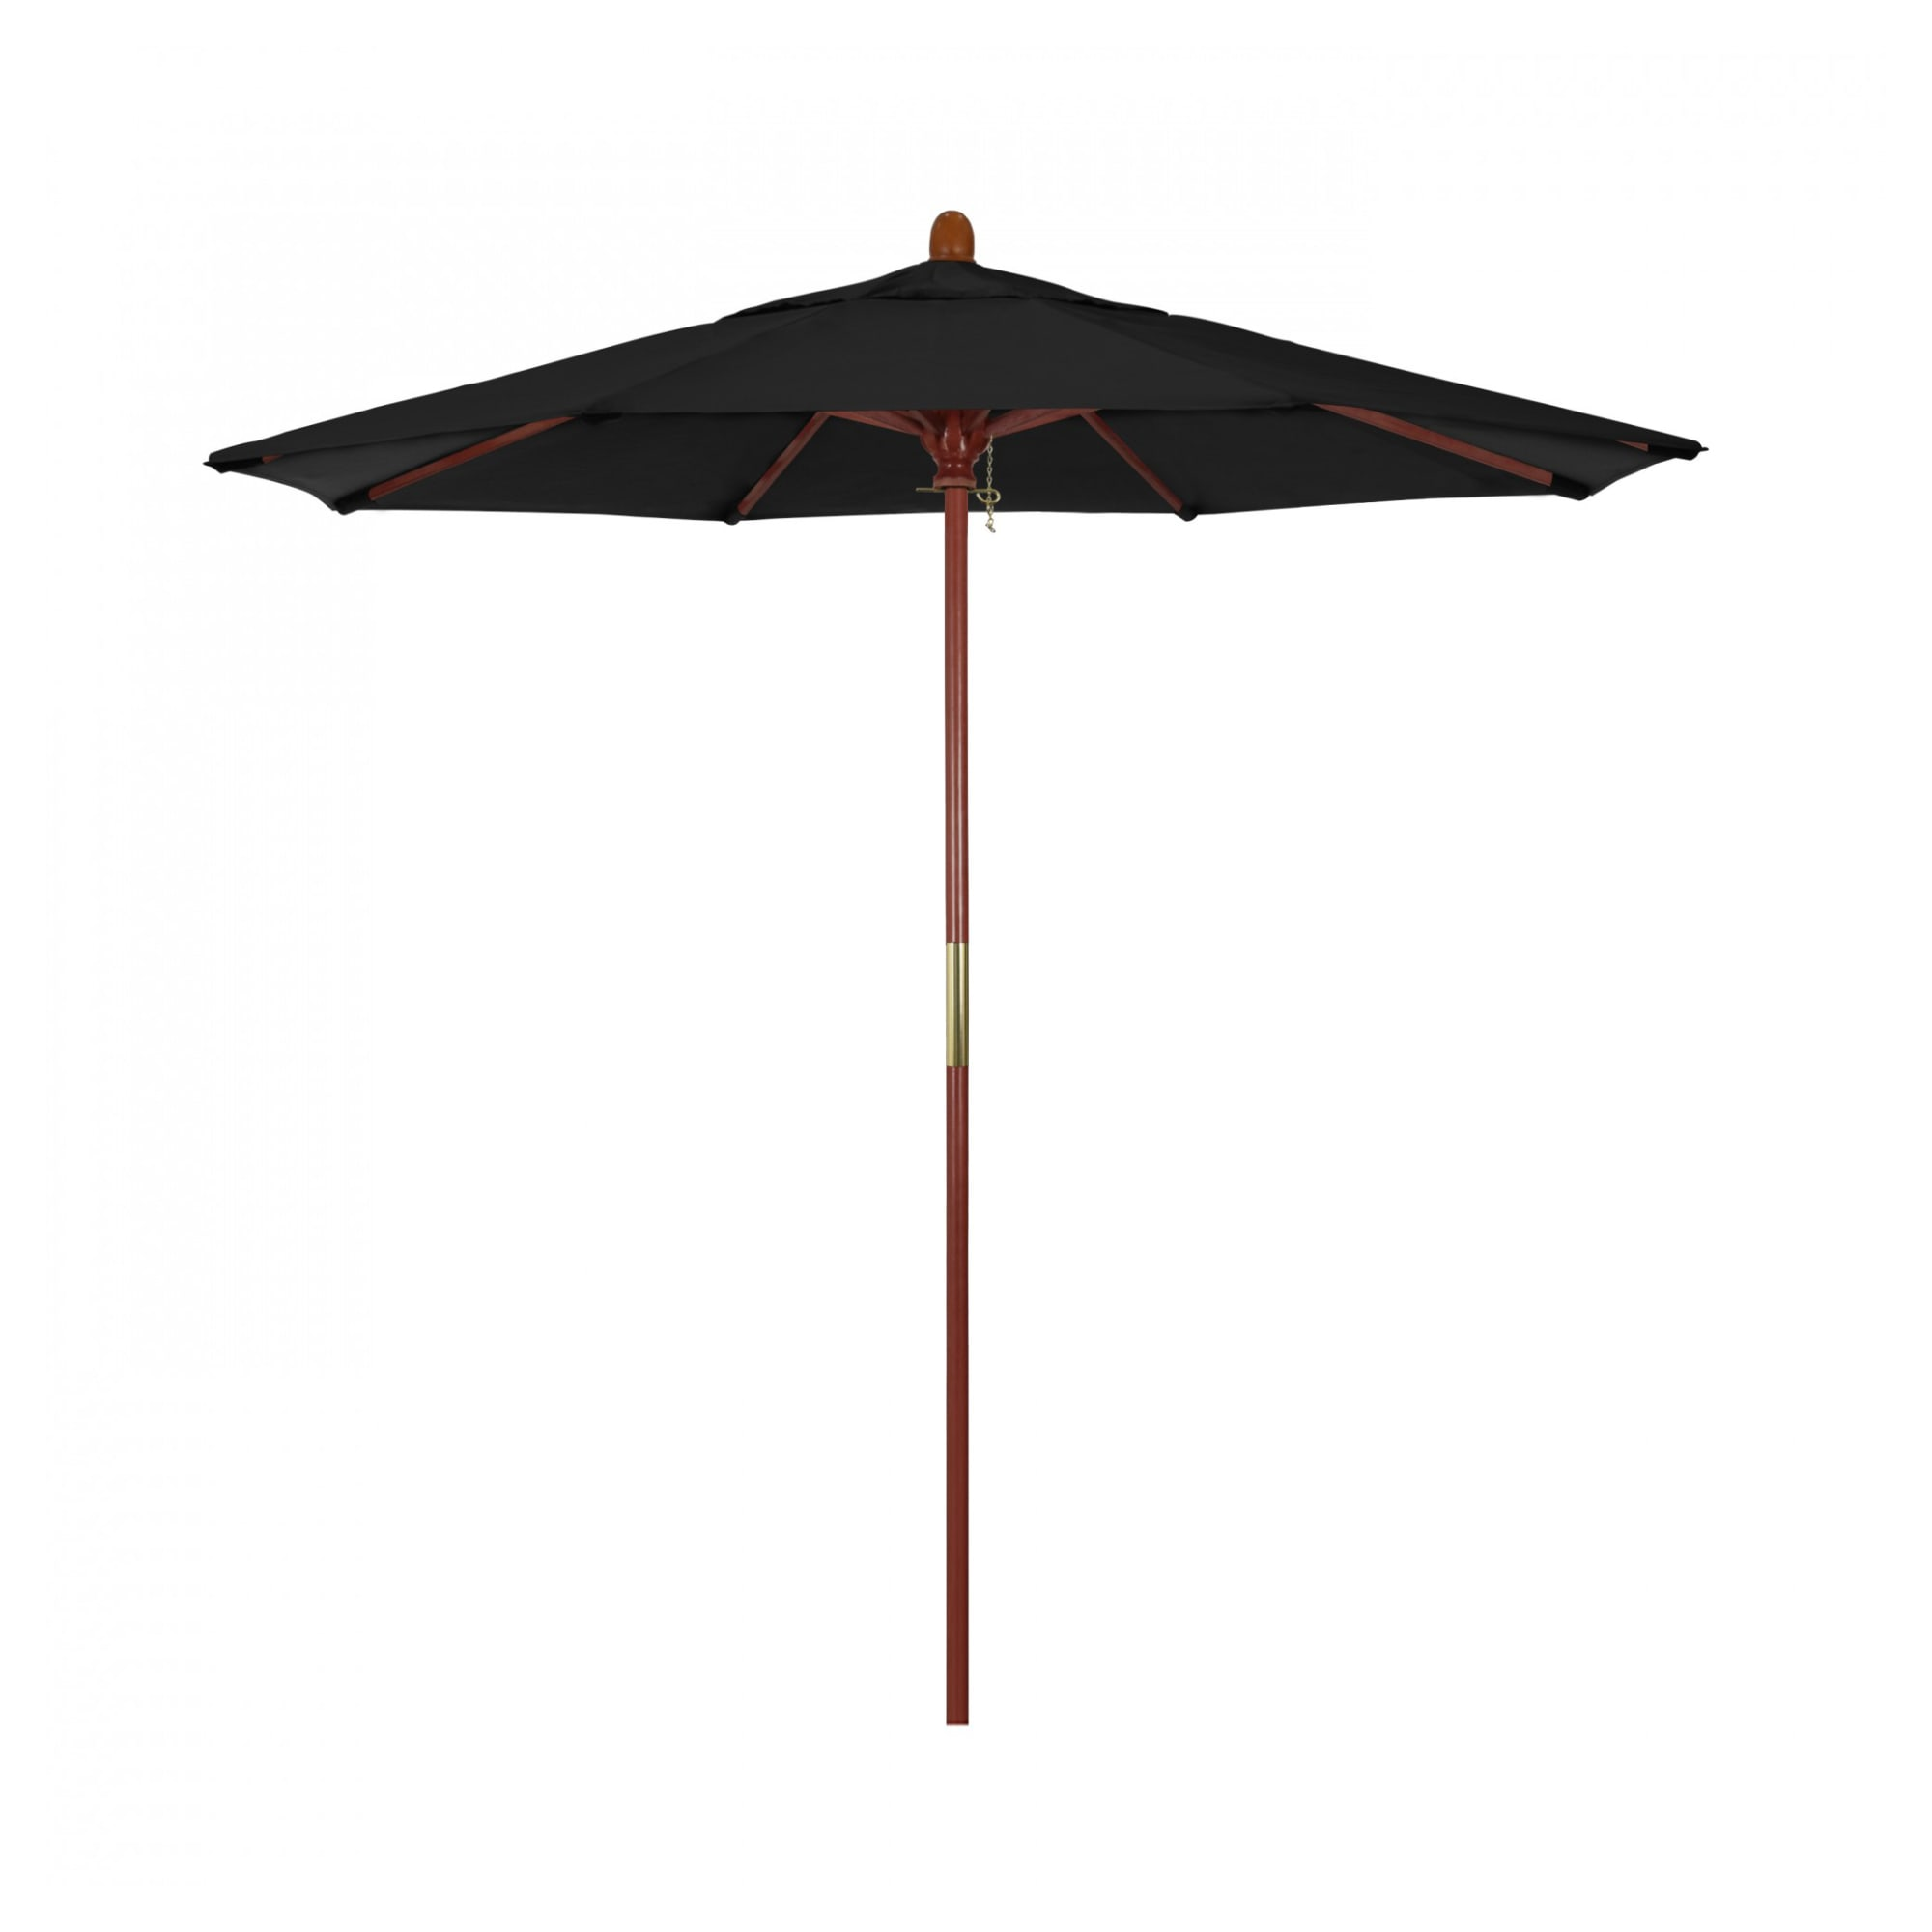 7.5 ft Ventura Wood Commercial Umbrella with 7.5 ft Ventura Wood Commercial Umbrella